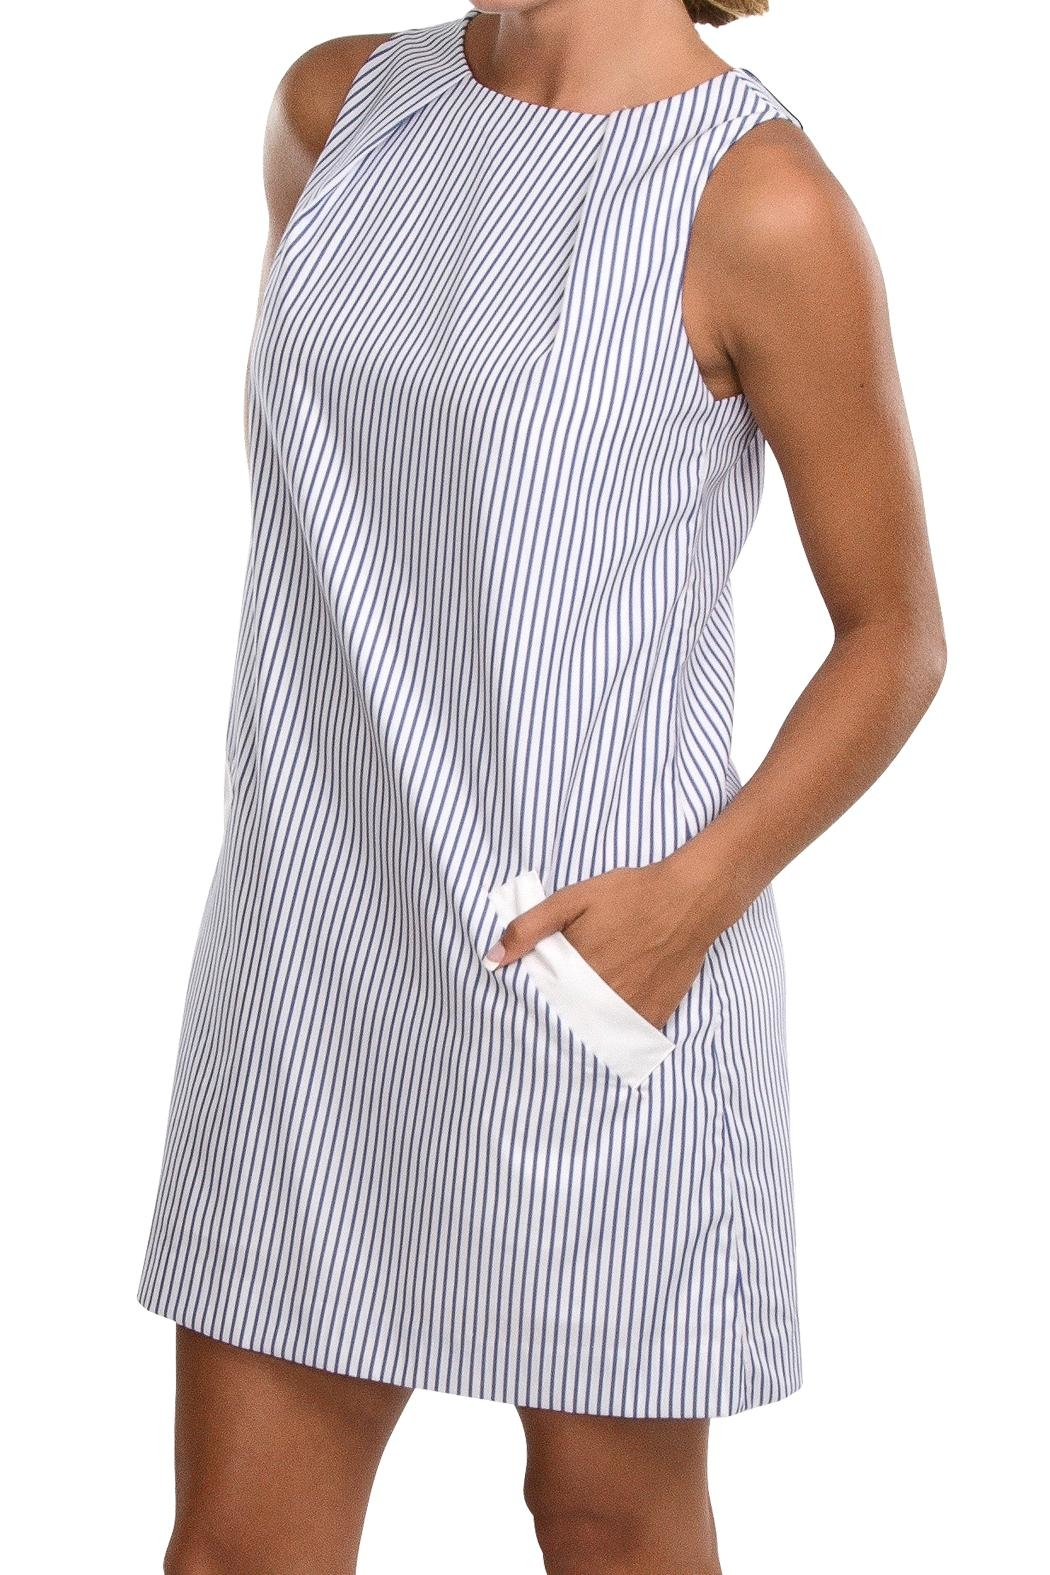 Cortland Park Cotton Pocket Dress - Main Image